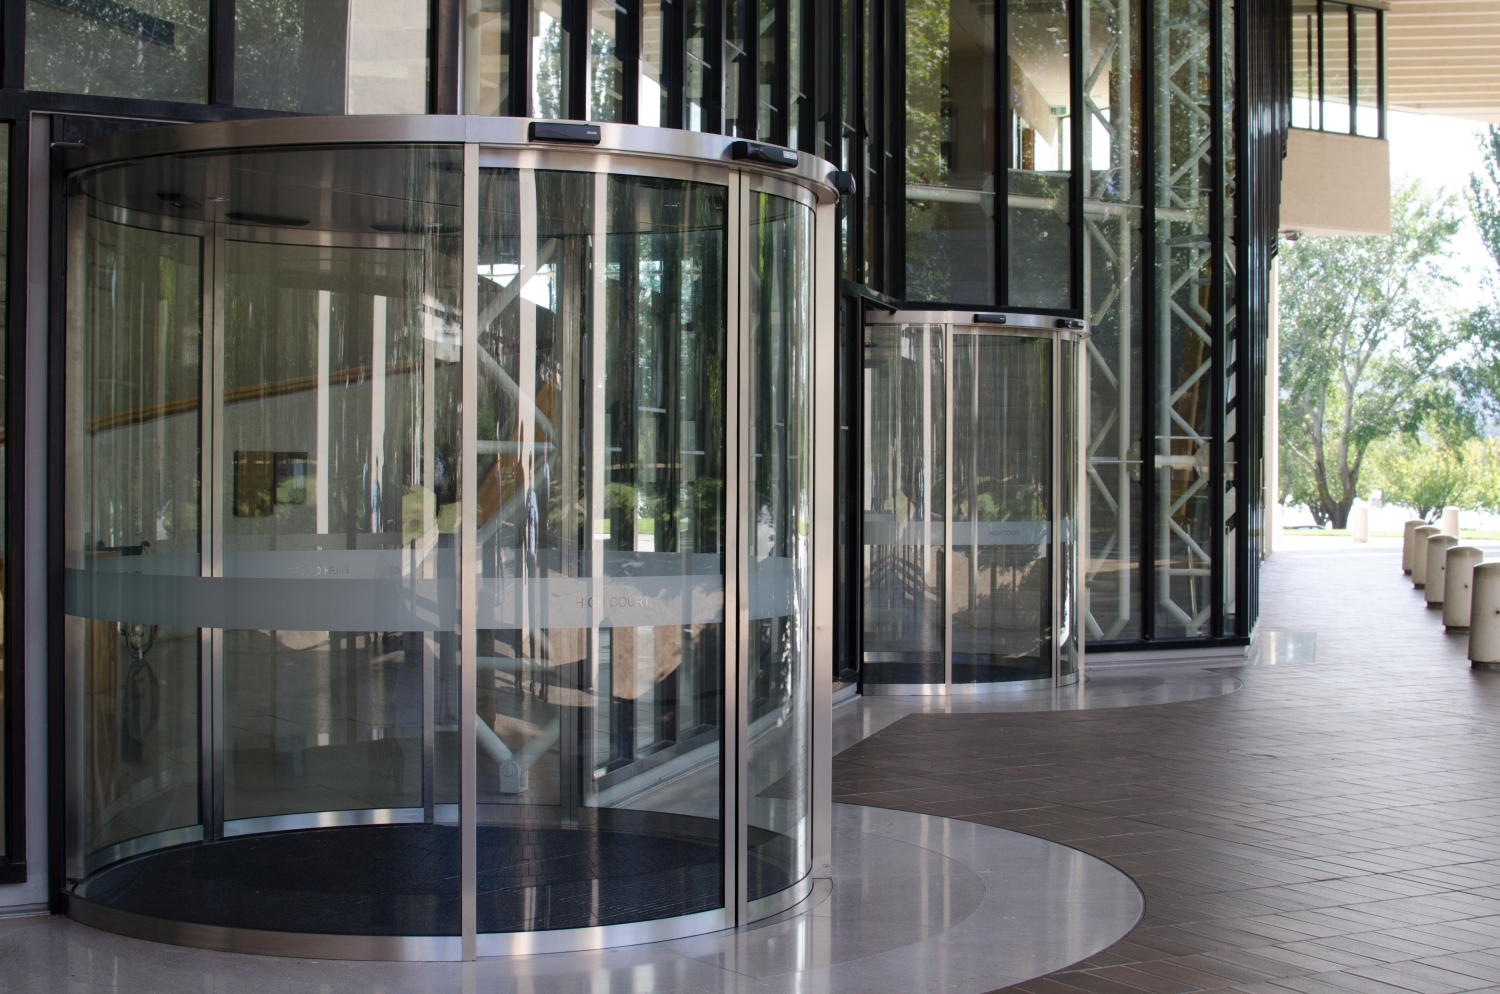 GEZE_Curved-Automatic-Sliding-Door_High-Court-of-Australia_Progressive-Controls_2016